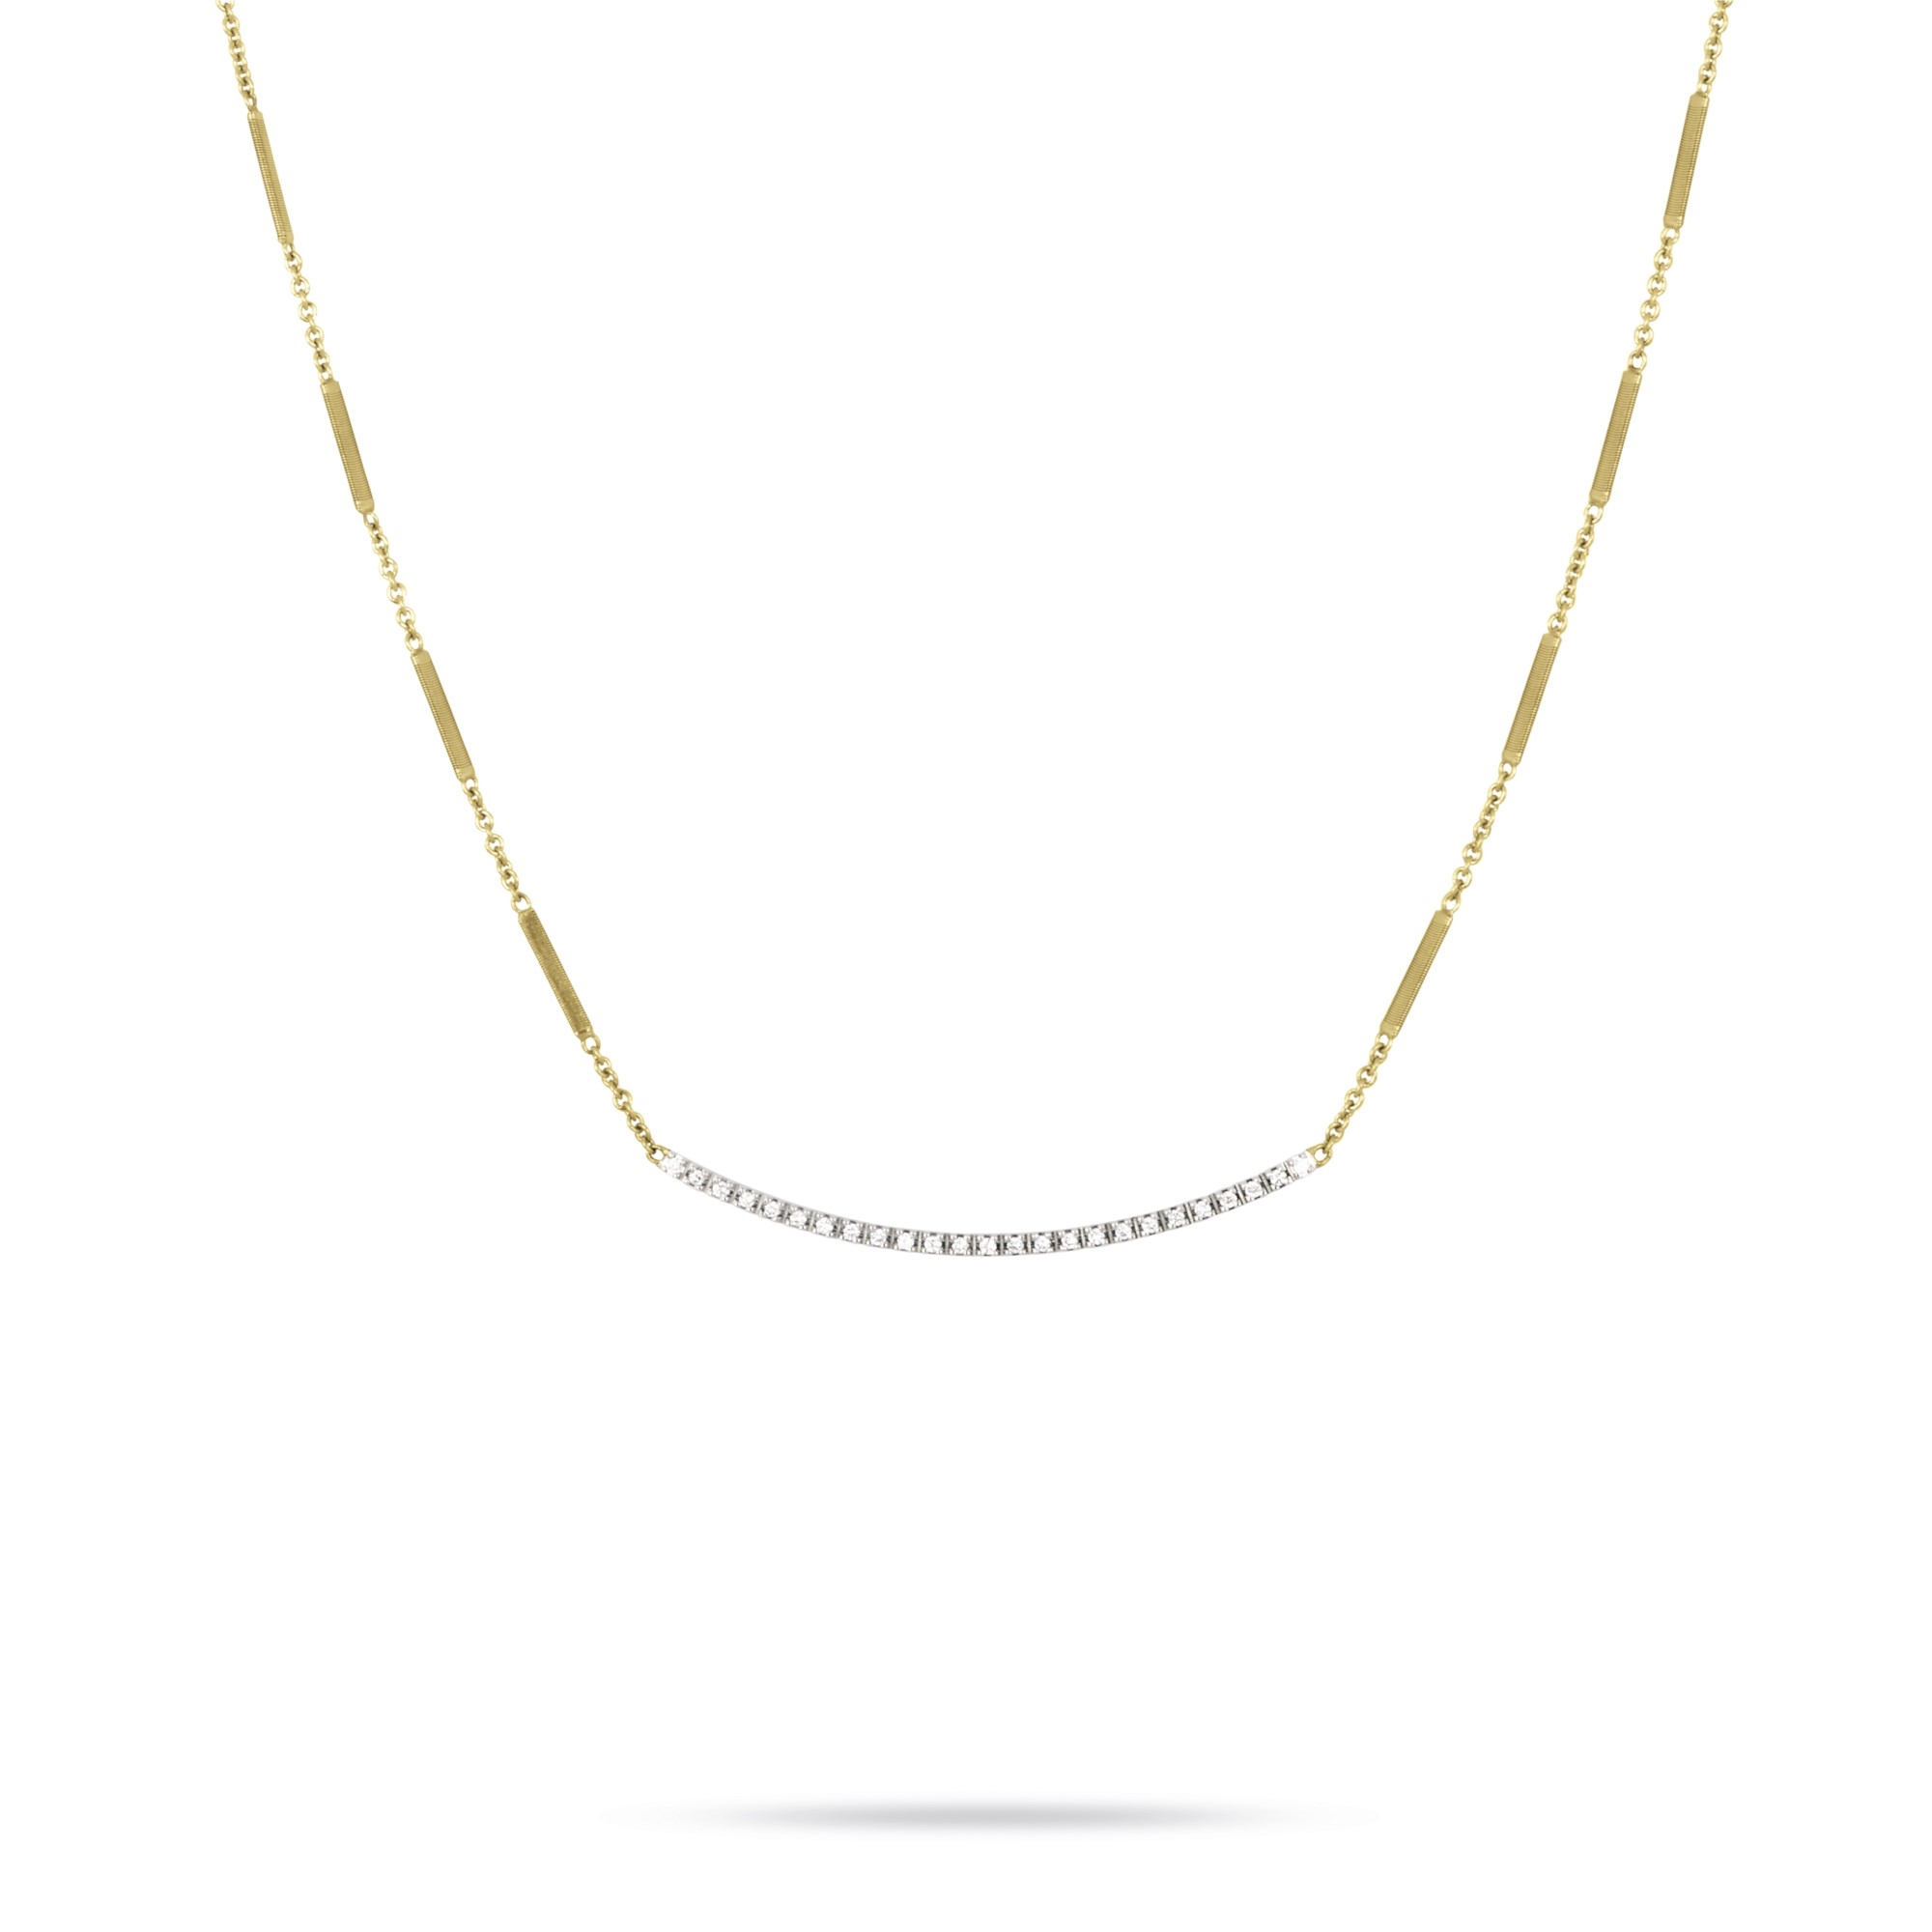 Marco Bicego 18K Yellow Gold .19cts  Diamond Gold Necklace with Stones CG713-B YW